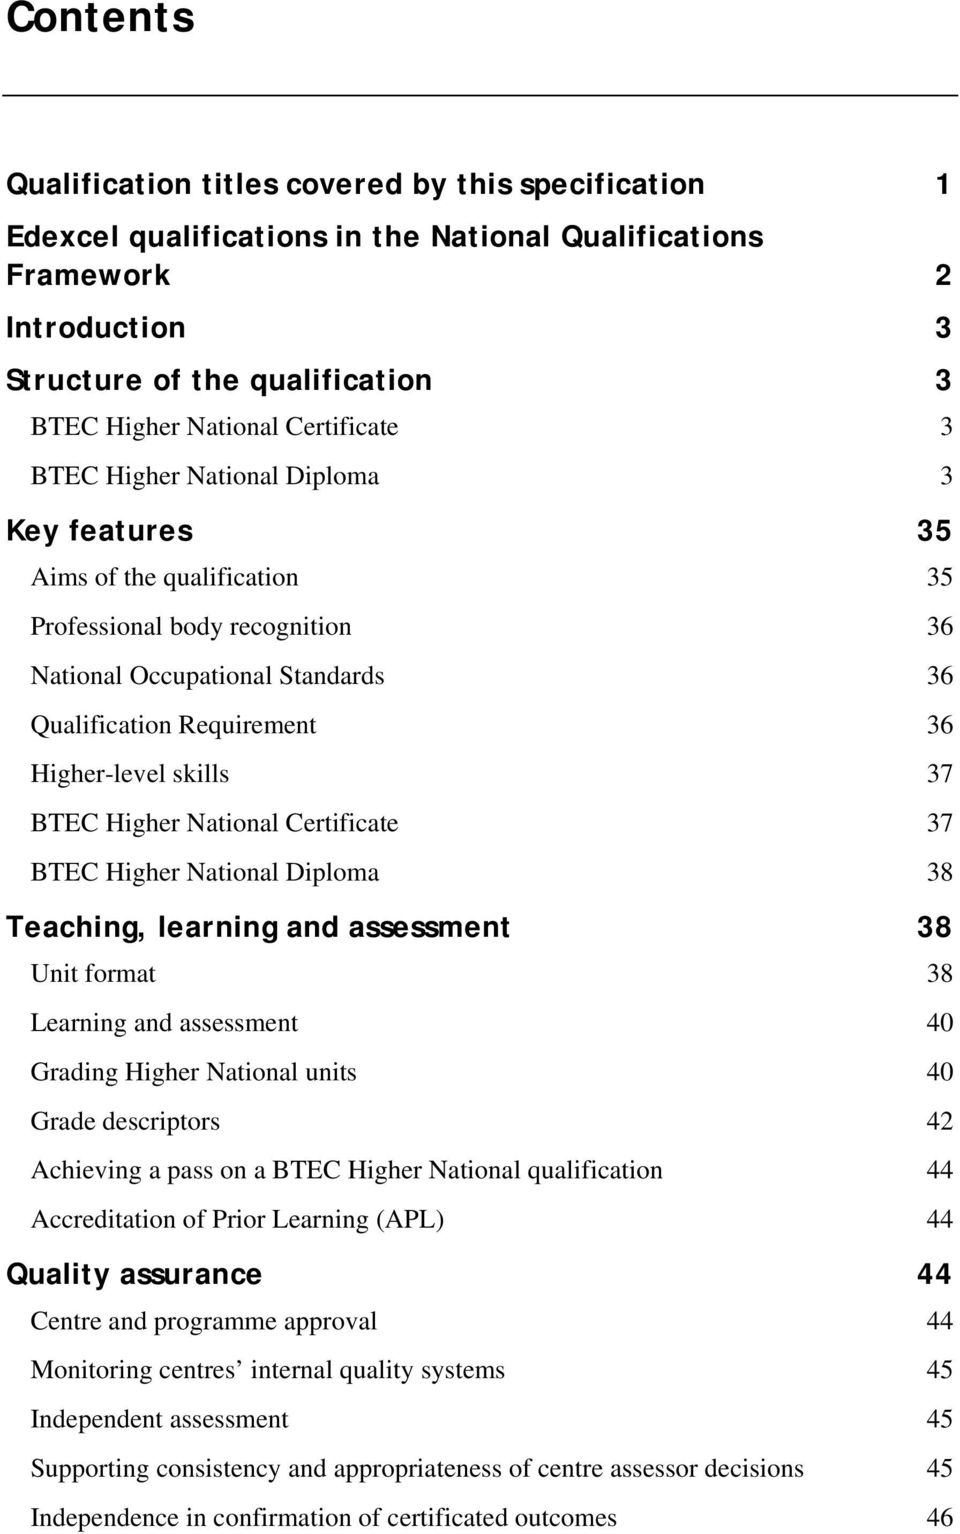 skills 37 BTEC Higher National Certificate 37 BTEC Higher National Diploma 38 Teaching, learning and assessment 38 Unit format 38 Learning and assessment 40 Grading Higher National units 40 Grade